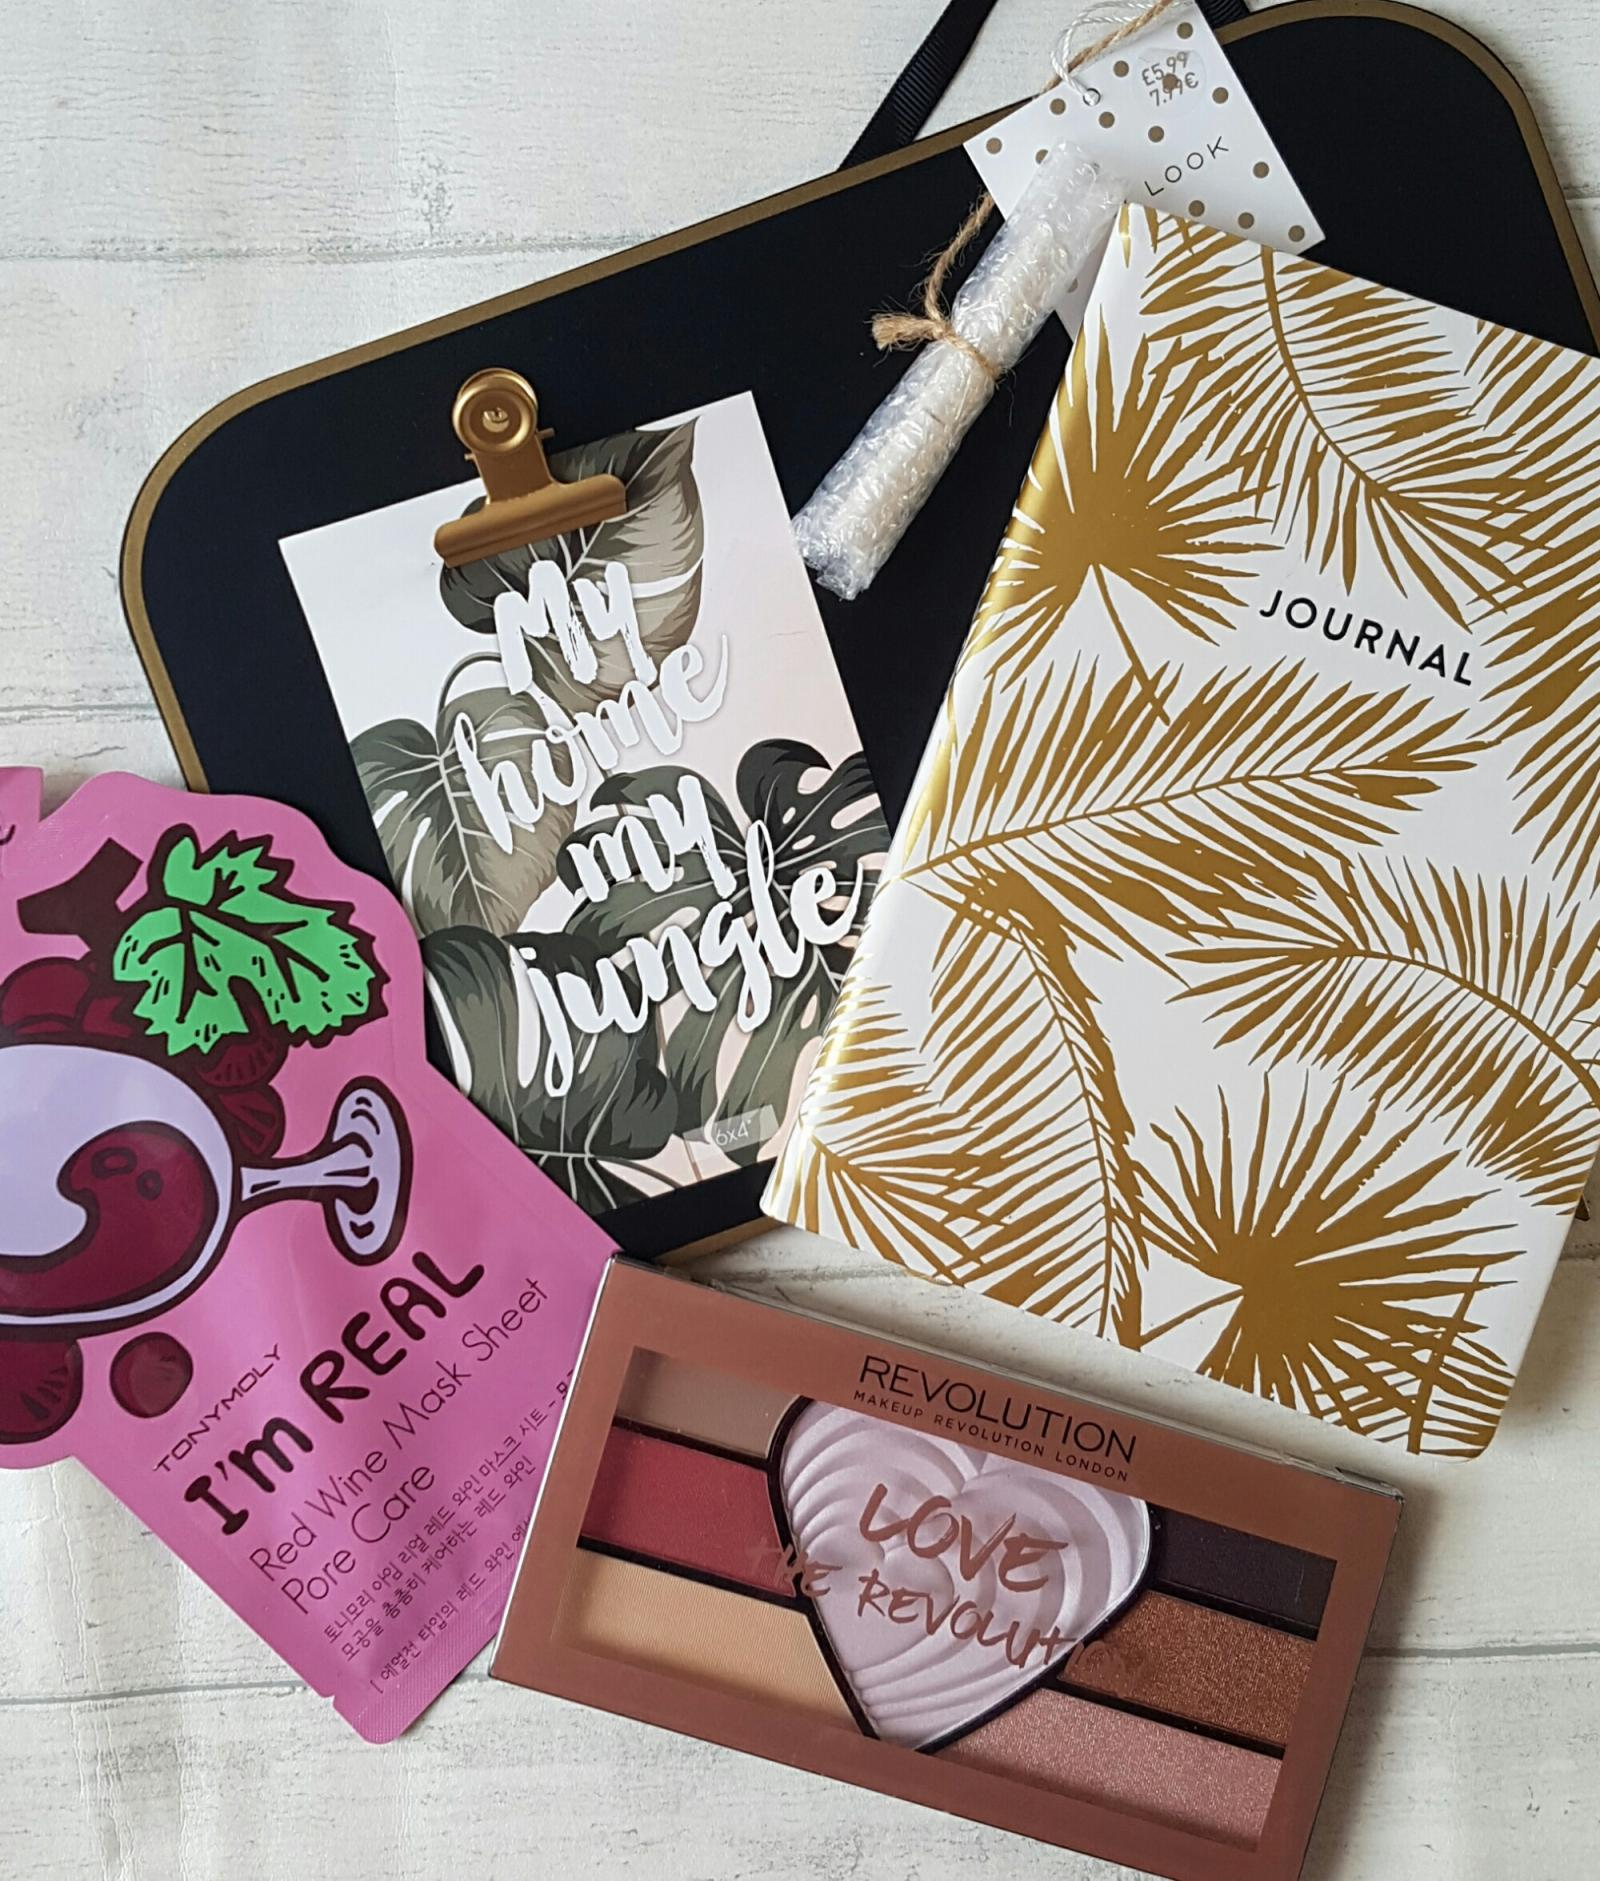 Giveaway Prize from Melia May